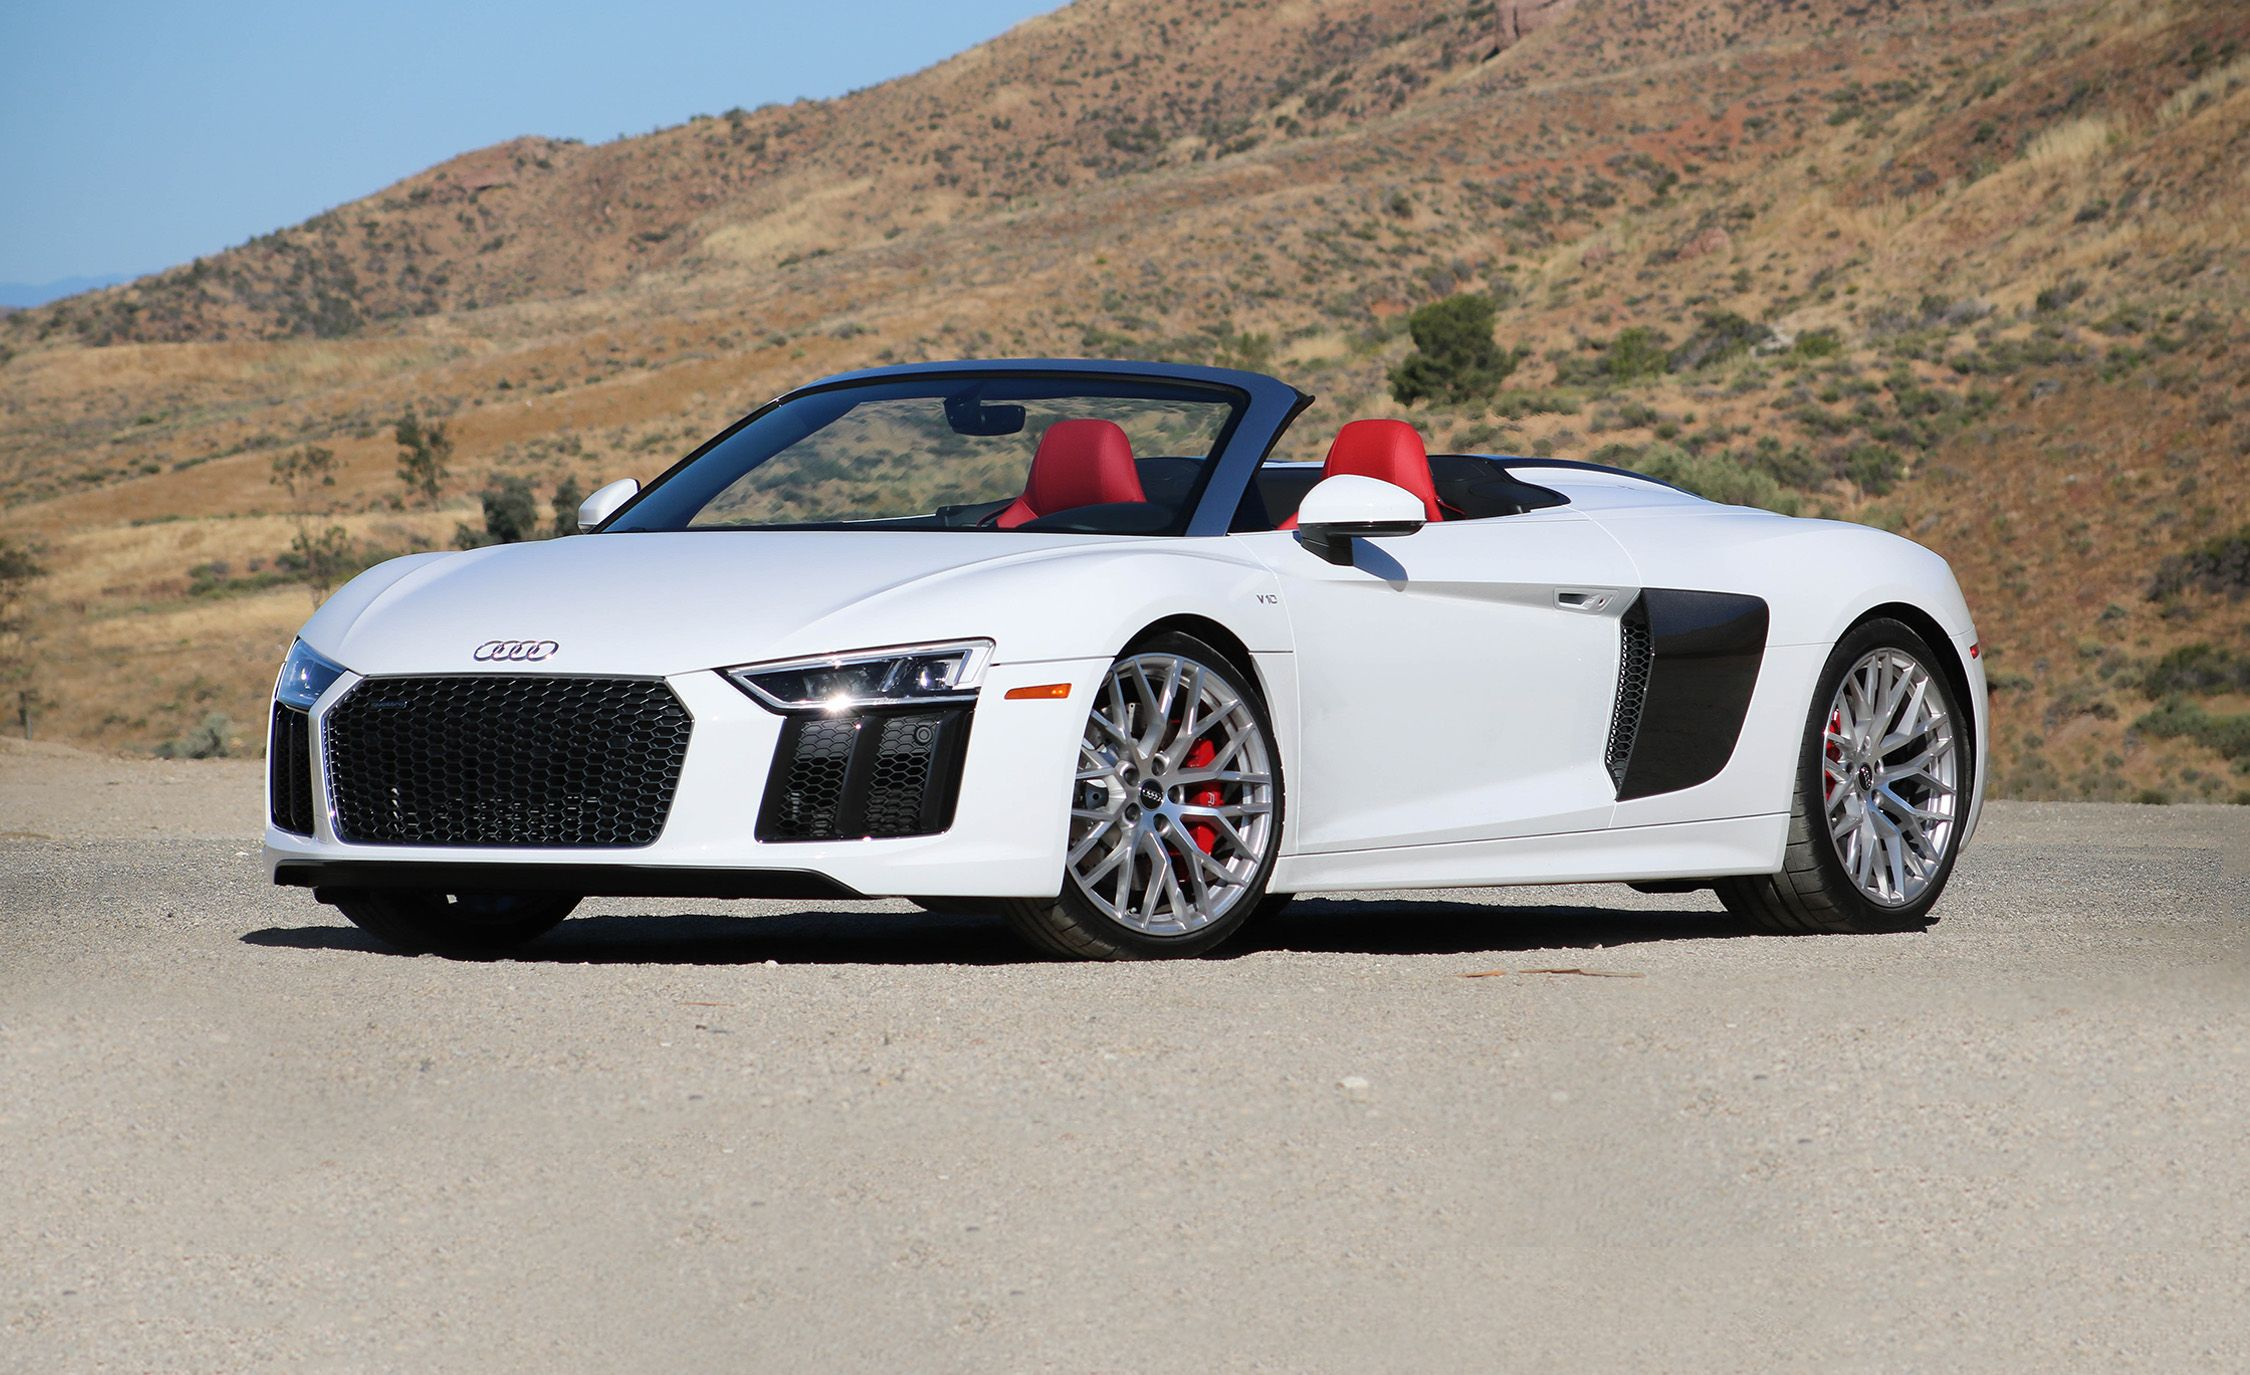 2017 audi r8 spyder instrumented test review car and driver. Black Bedroom Furniture Sets. Home Design Ideas